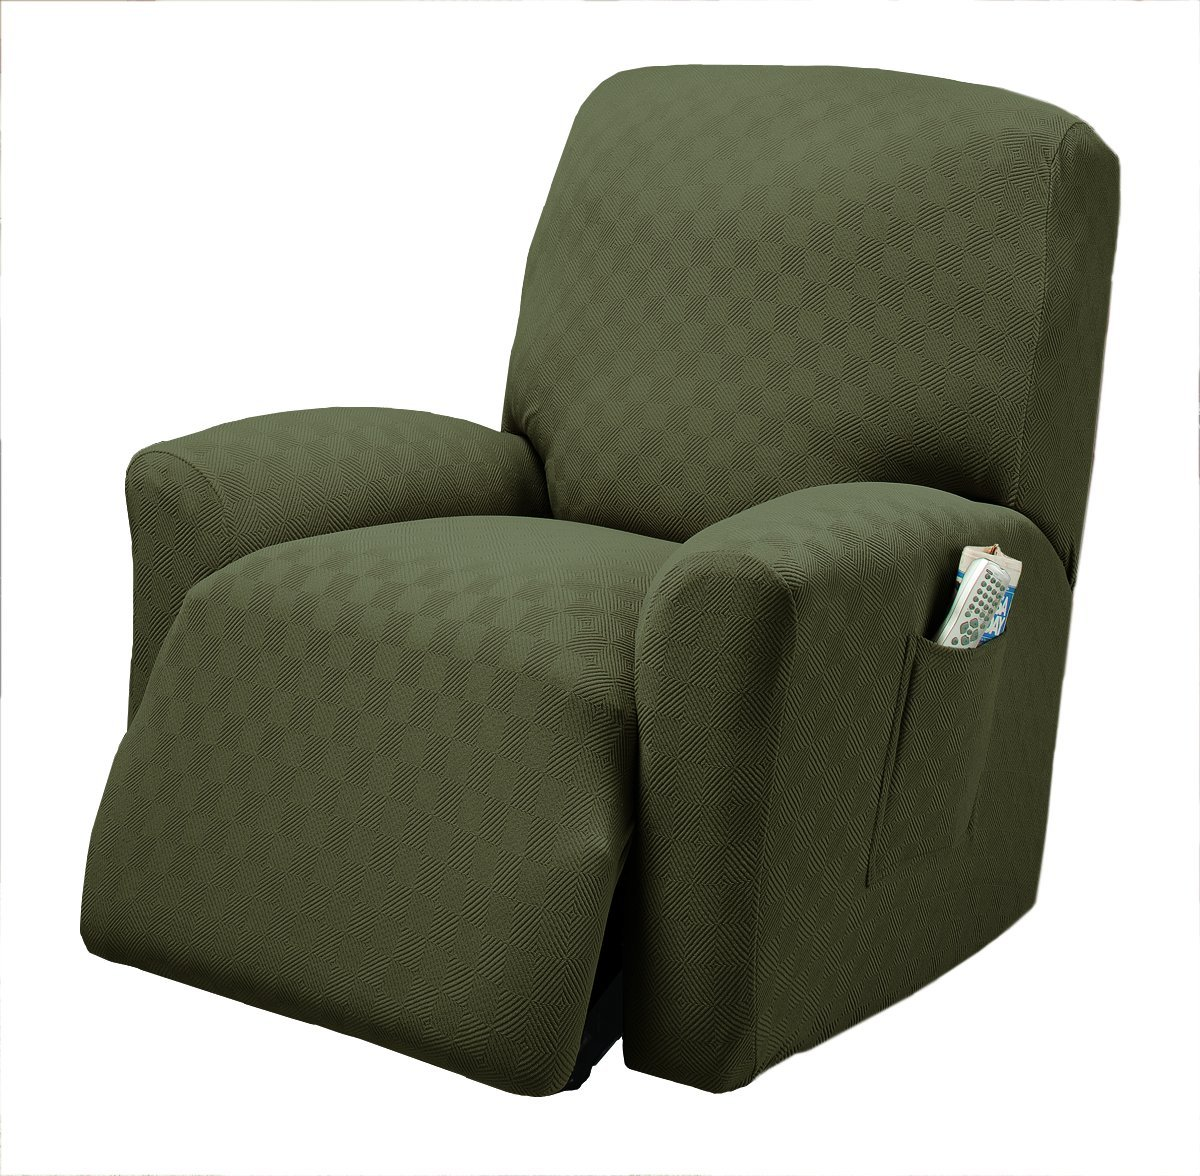 Superieur Amazon.com: Stretch Sensations Newport Recliner Stretch Slipcover, Sage:  Home U0026 Kitchen